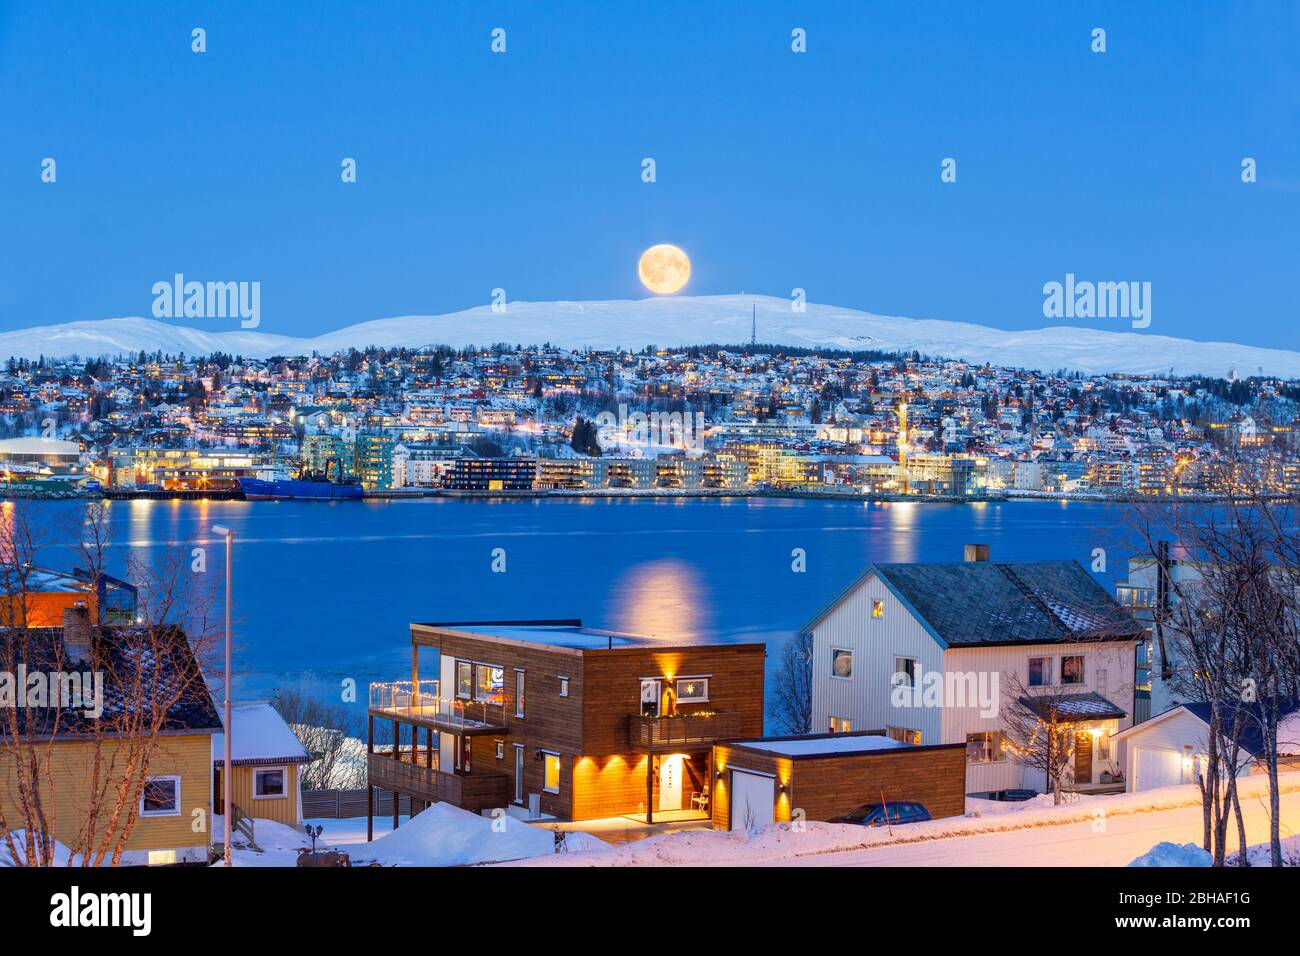 Tromso City At Full Moon In Winter Time, Christmas in Tromso, Norway Stock Photo